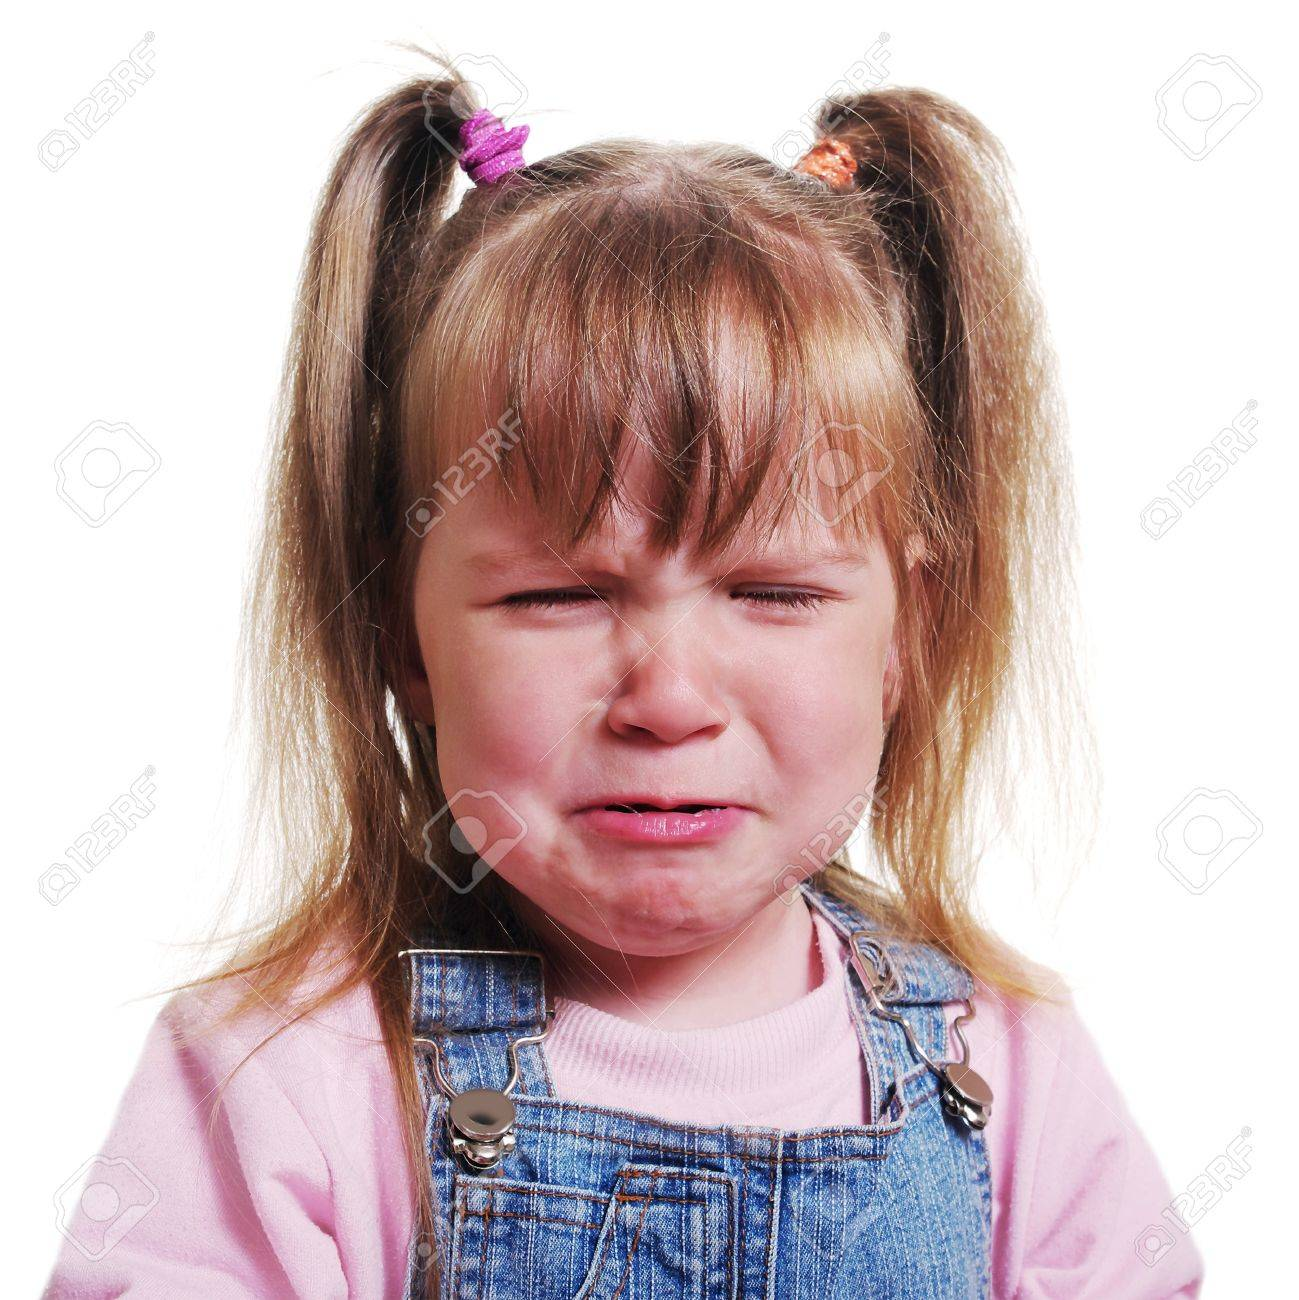 Girl with pigtail is crying. - 9819047